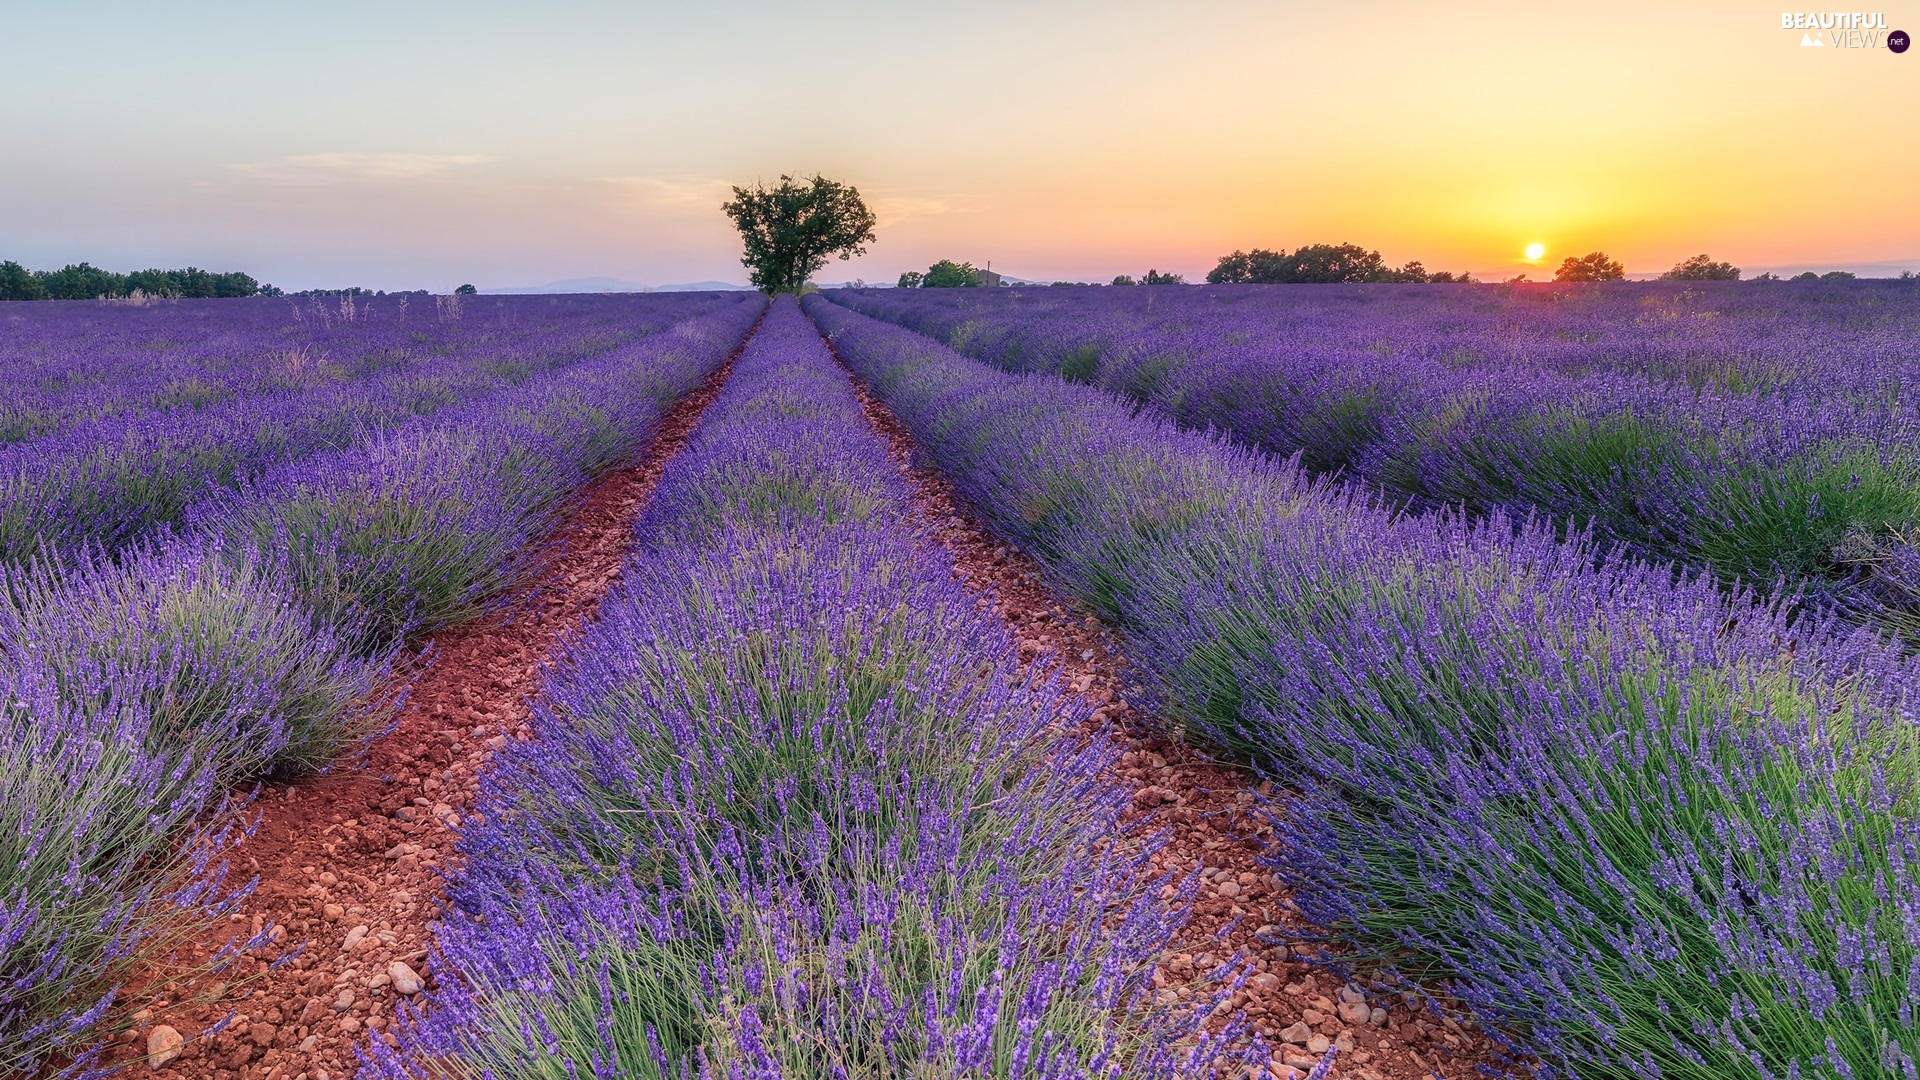 trees, viewes, lavender, Sunrise, Field